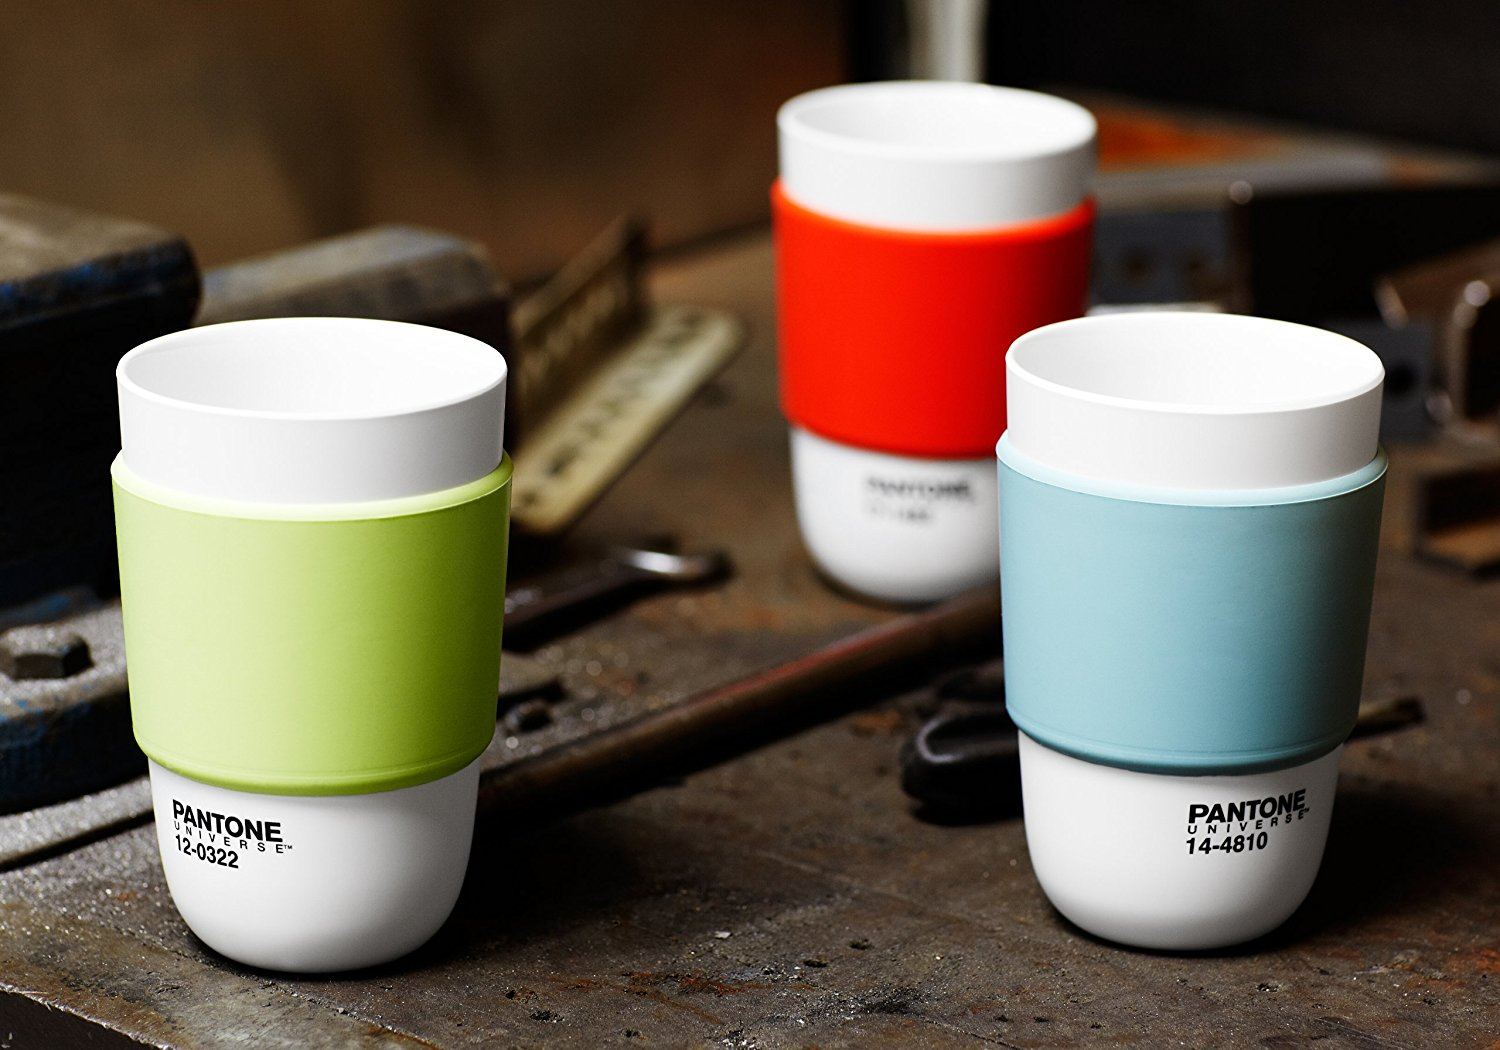 Pantone Color Cup with Silicone Band - Minimalist cups inspired by the colors of the Pantone & Pantone Color Cup with Silicone Band | Expertly Chosen Gifts